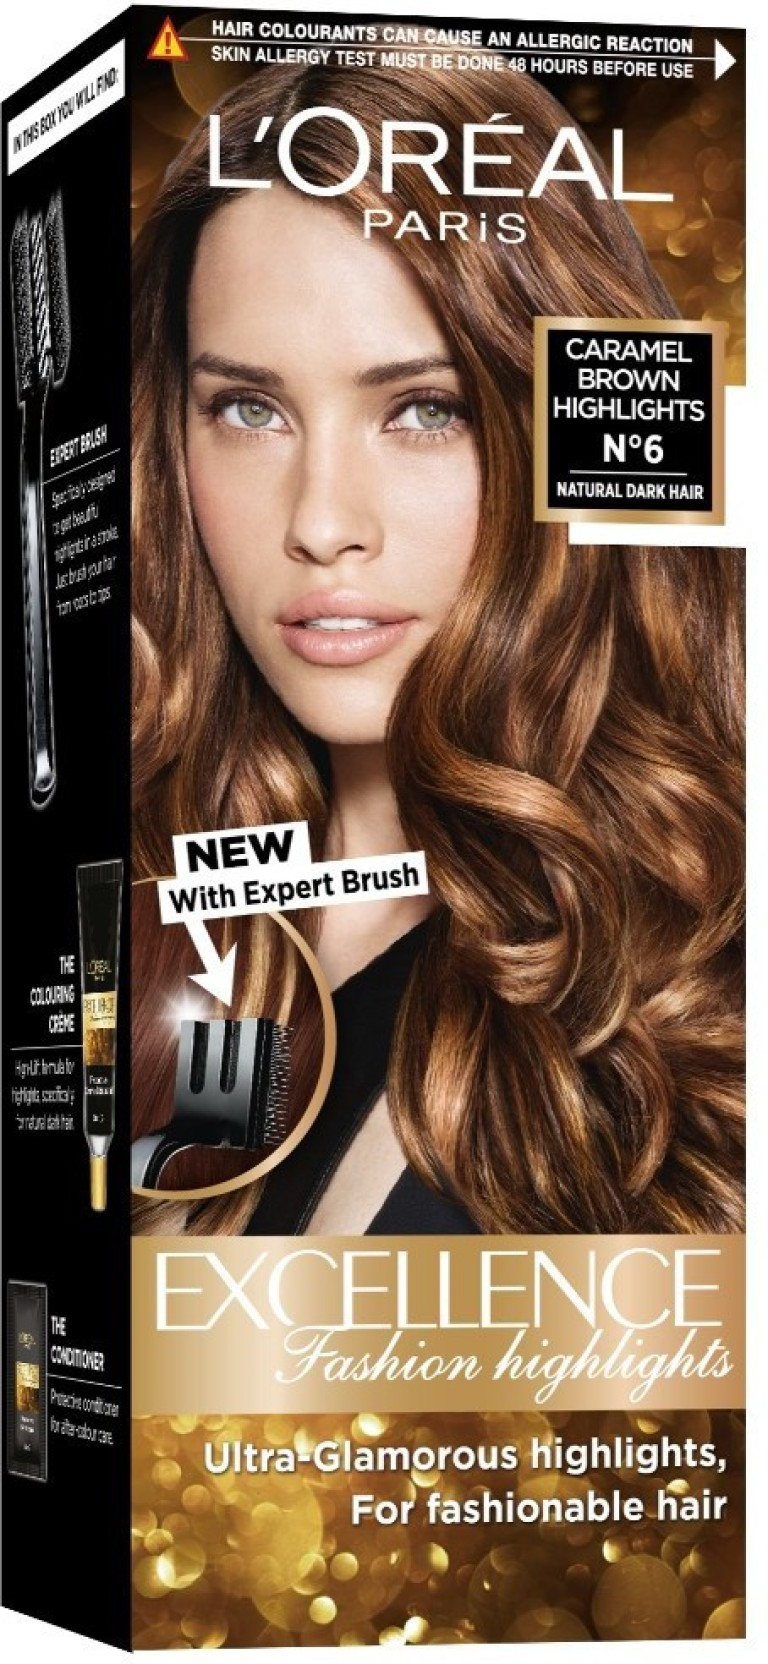 Loreal Paris Excellence Fashion Highlights Hair Color Price In